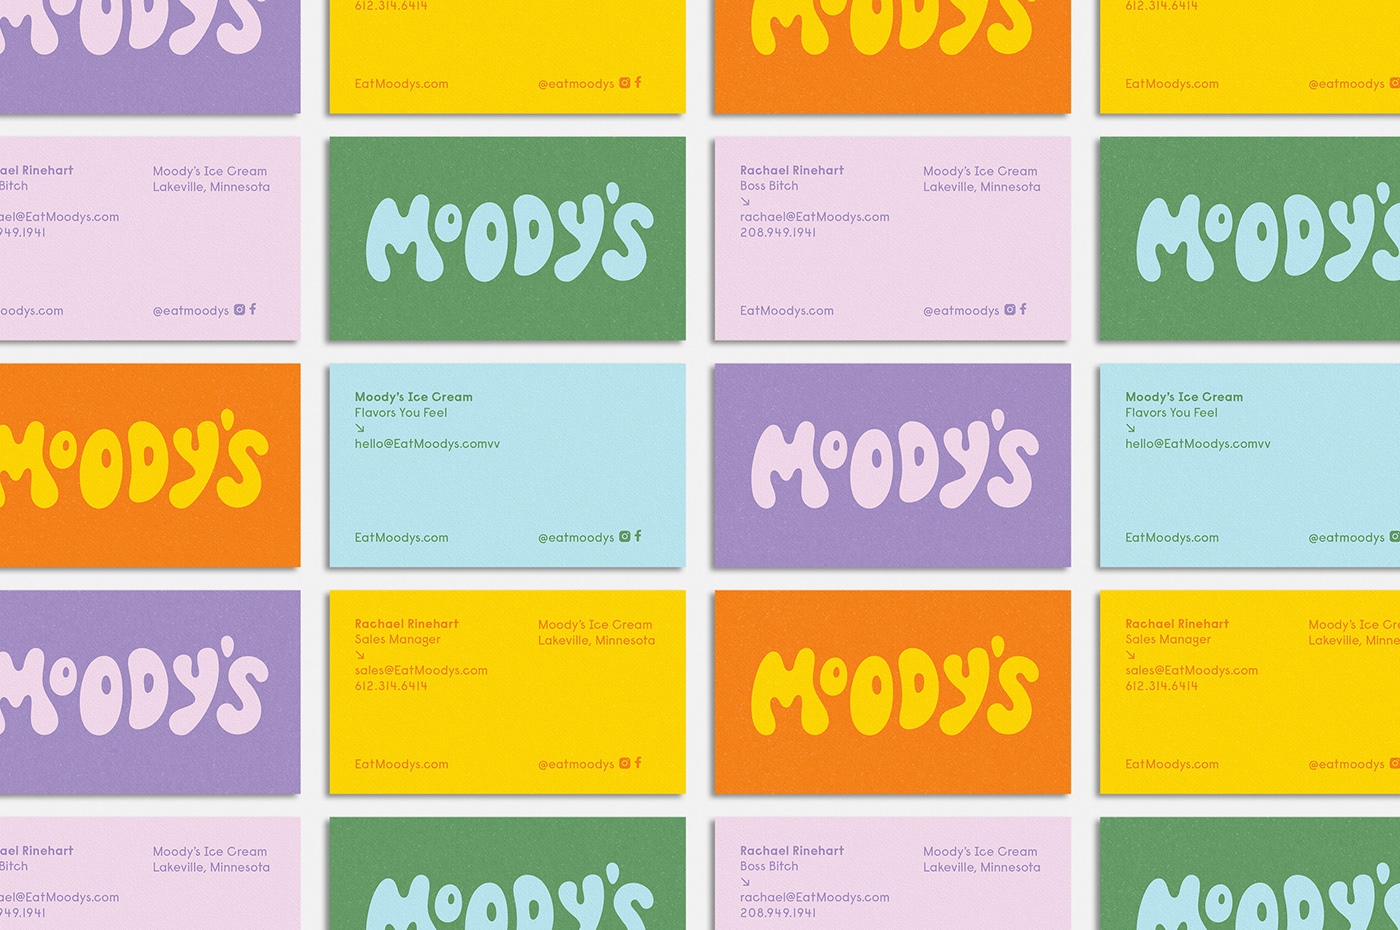 Business cards for Moody's designed by Abby Haddican Studio